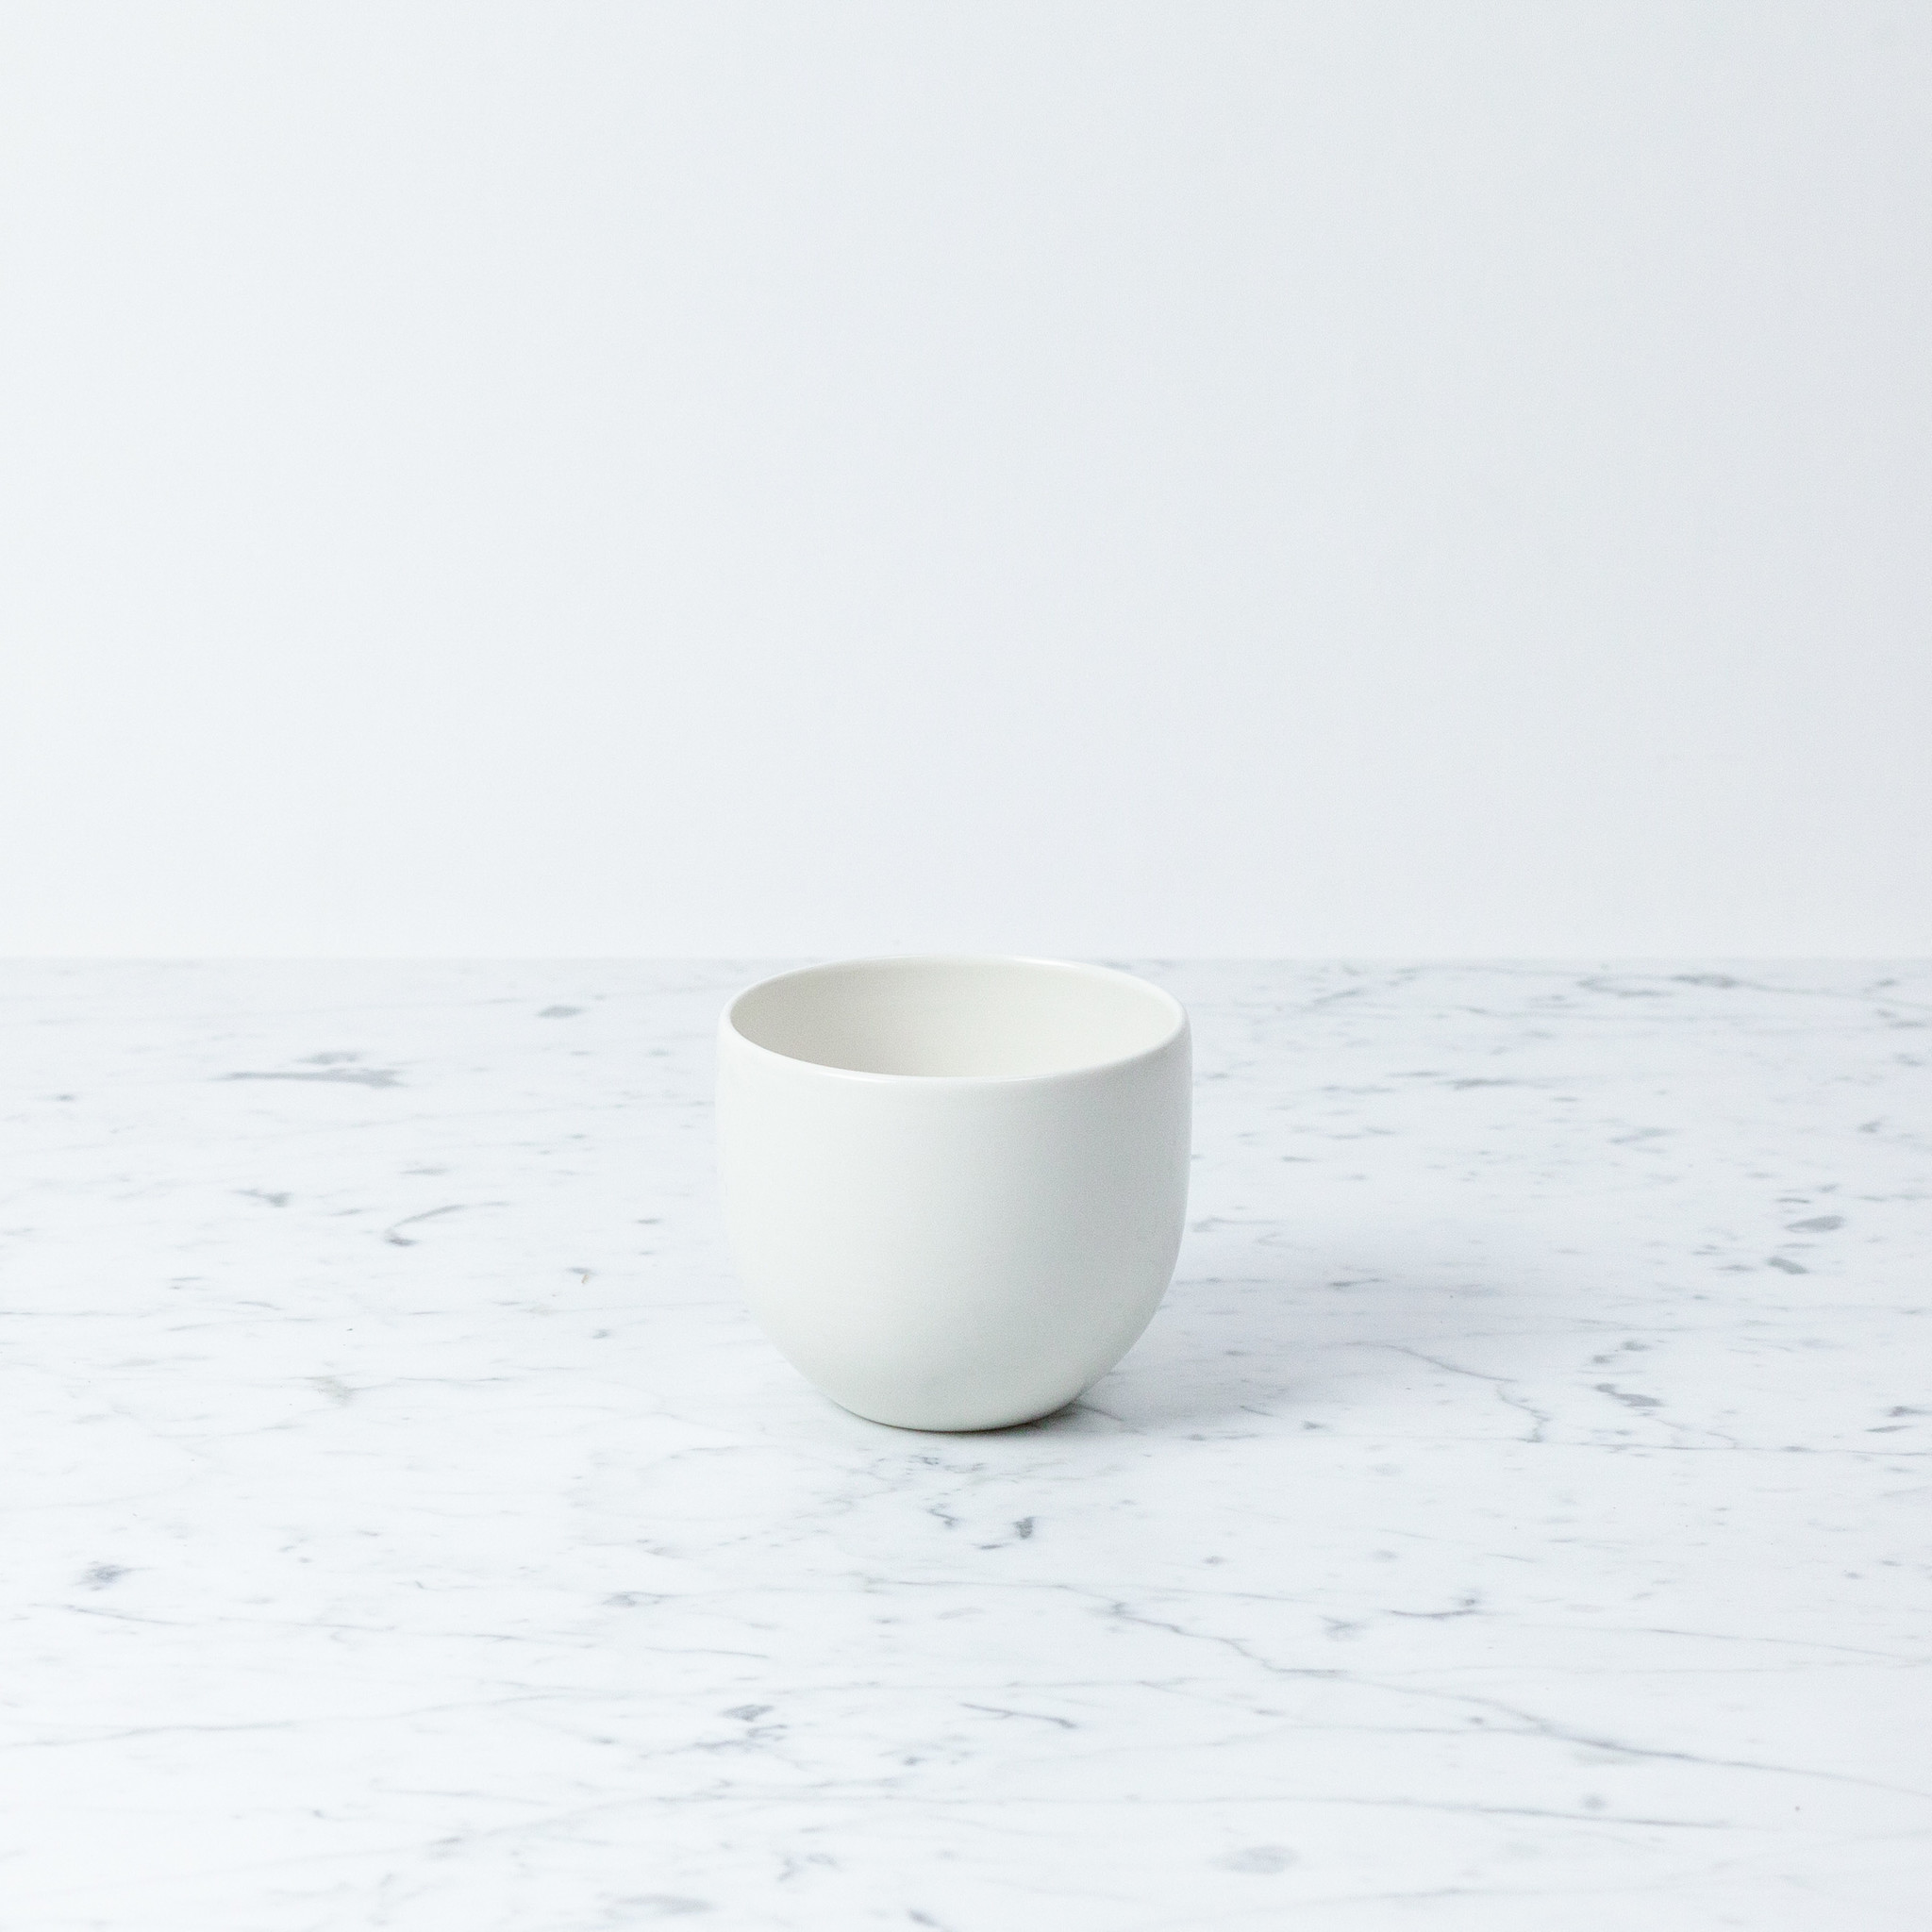 John Julian John Julian Porcelain Full Glaze Simple Beaker Plain